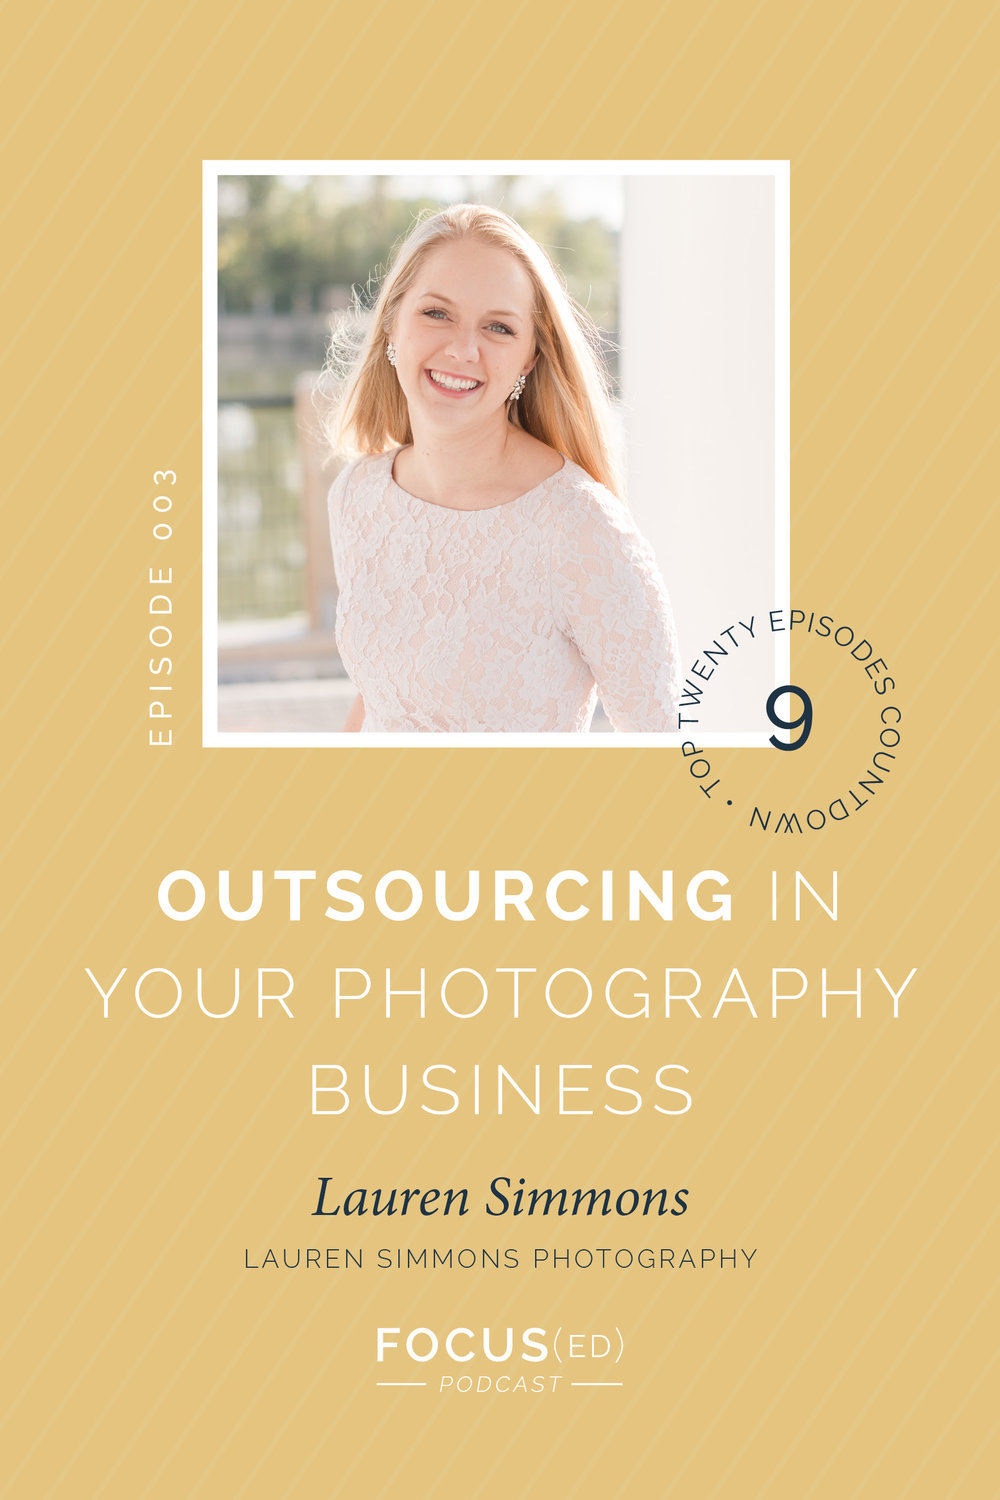 Focused Podcast : What to outsource in my photography business